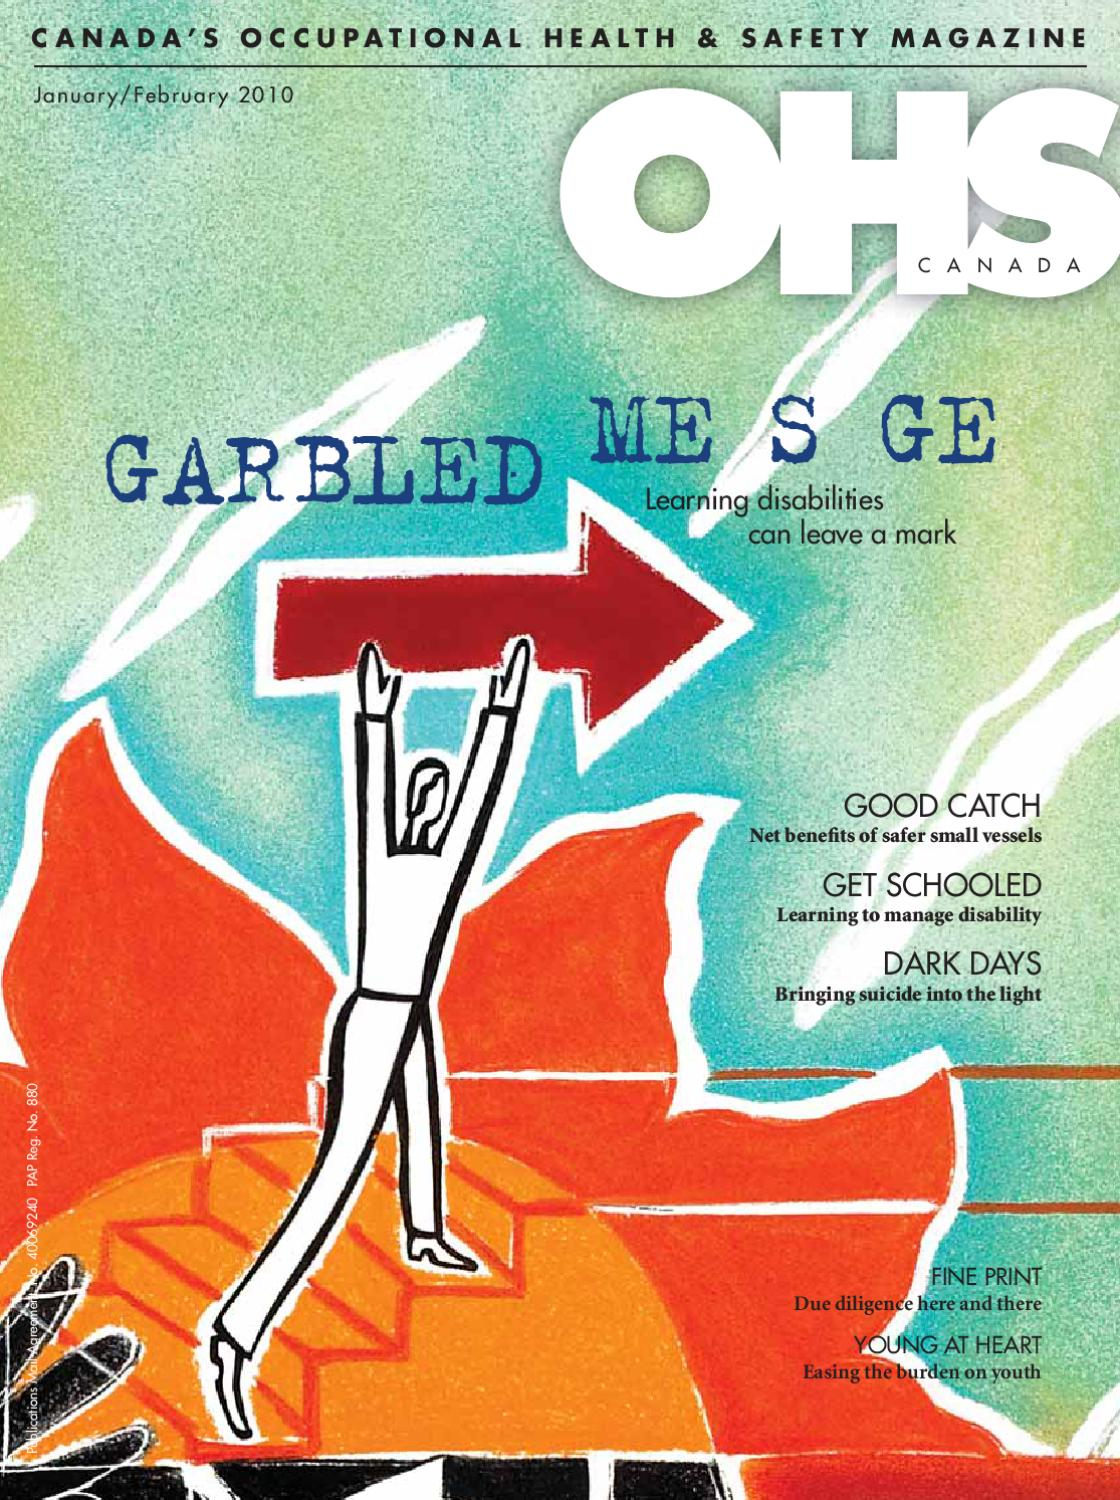 OHS Canada January 2010 by Annex-Newcom LP - issuu